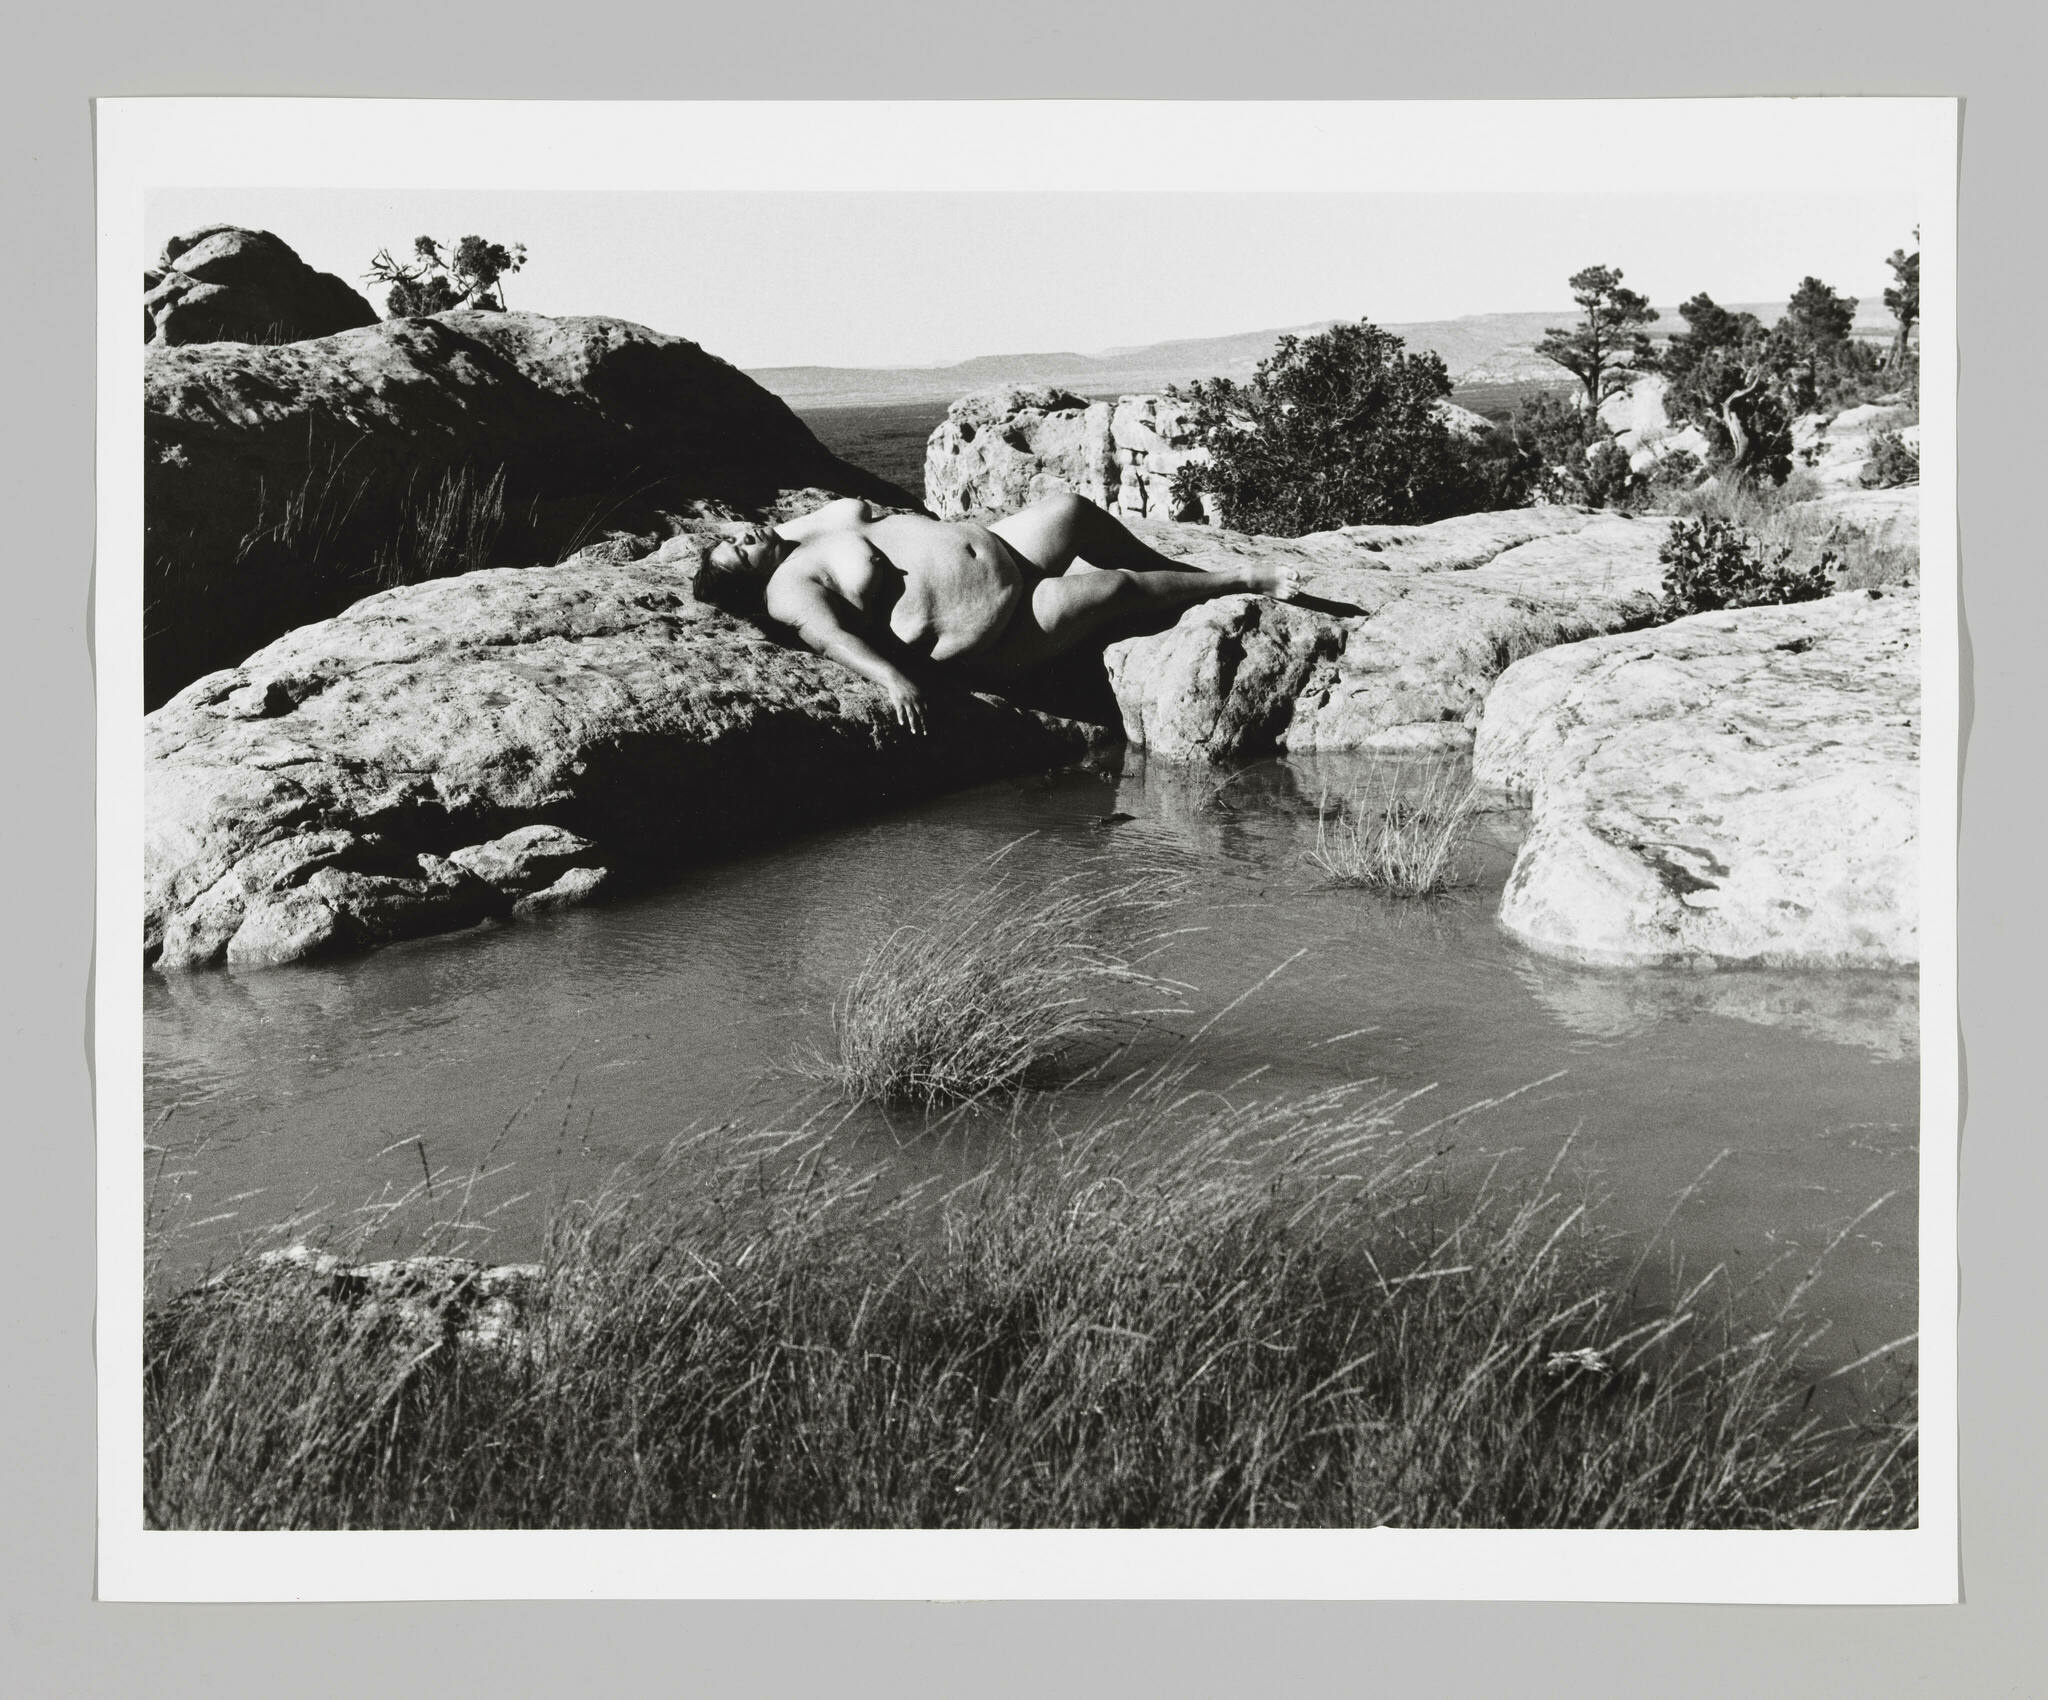 A large, naked woman reclines serenely at water's edge in a rocky landscape